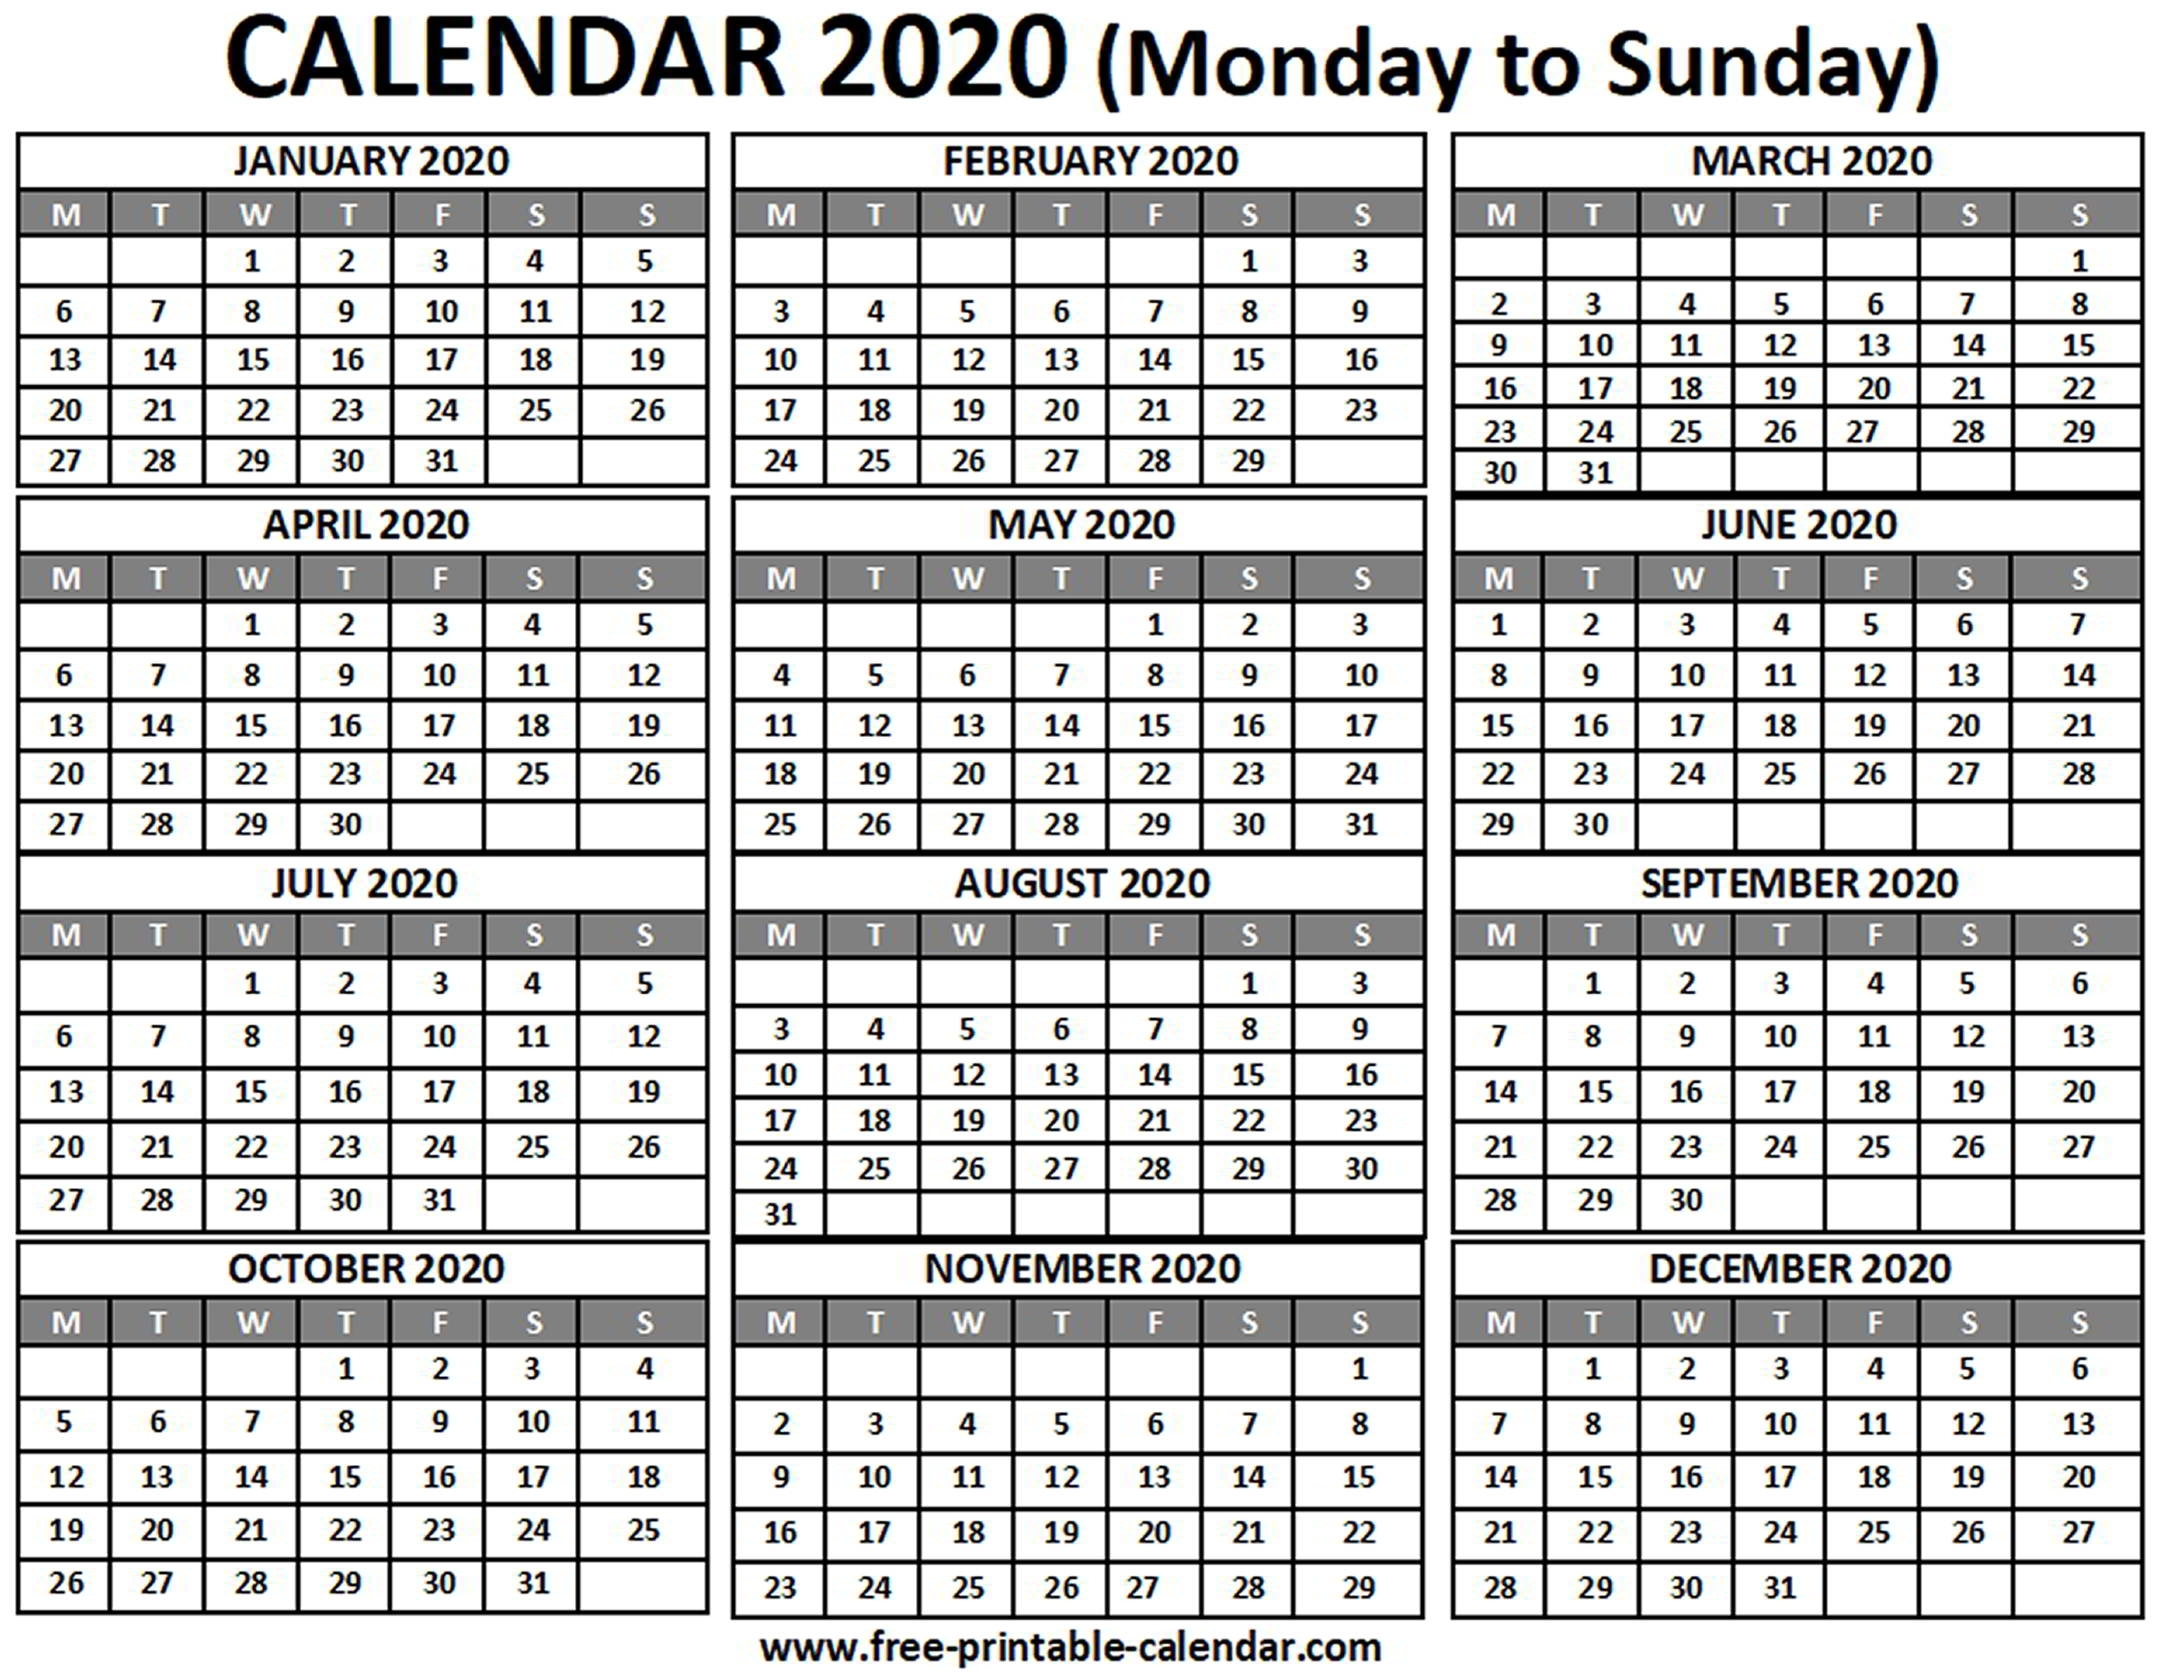 2020 Calendar - Free-Printable-Calendar within 2020 Free Printable Calendars That Start With Monday